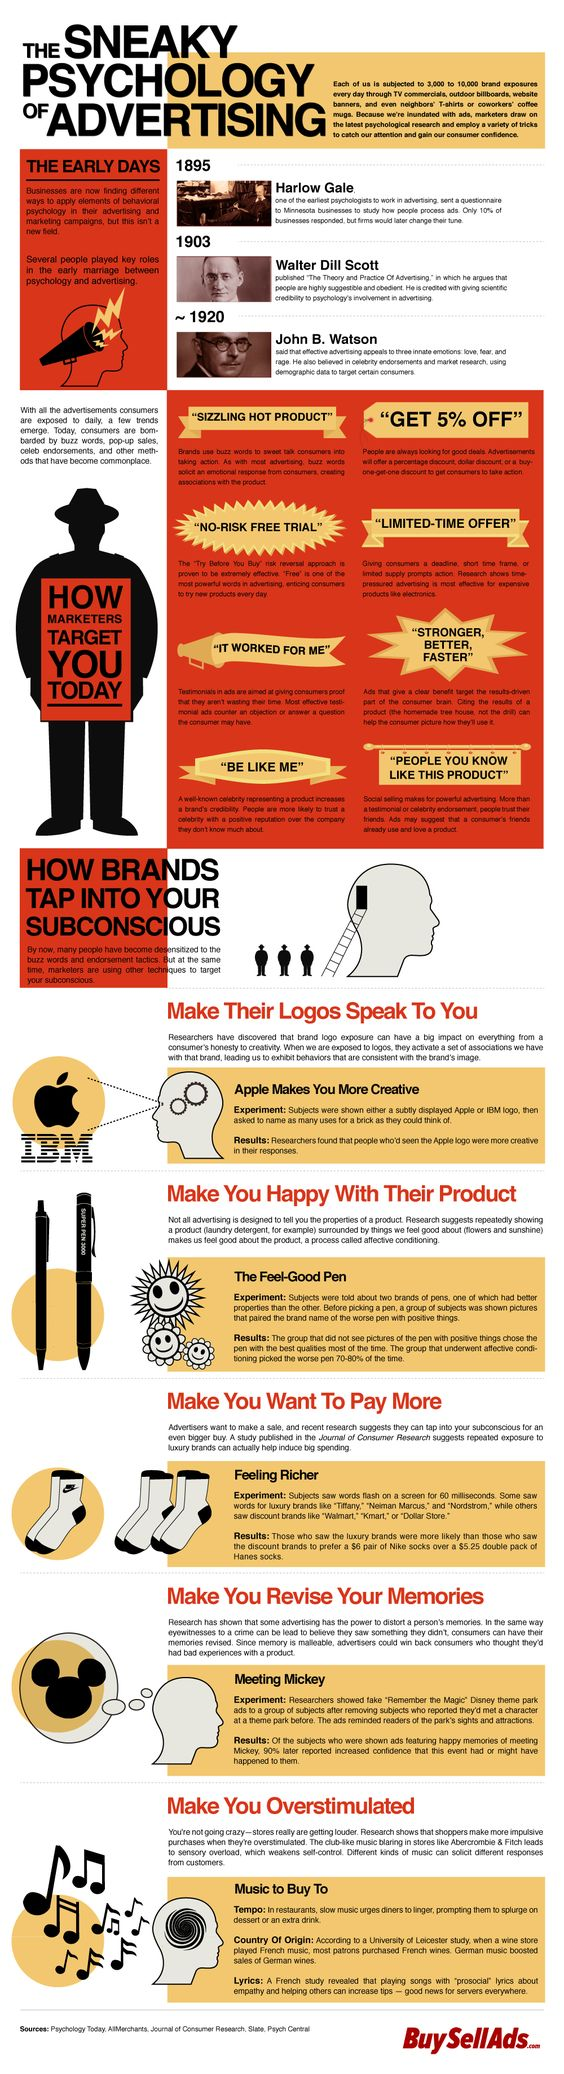 The Sneaky Psychology Of Advertising   Online Advertising Blog – BuySellAds.com #infographic